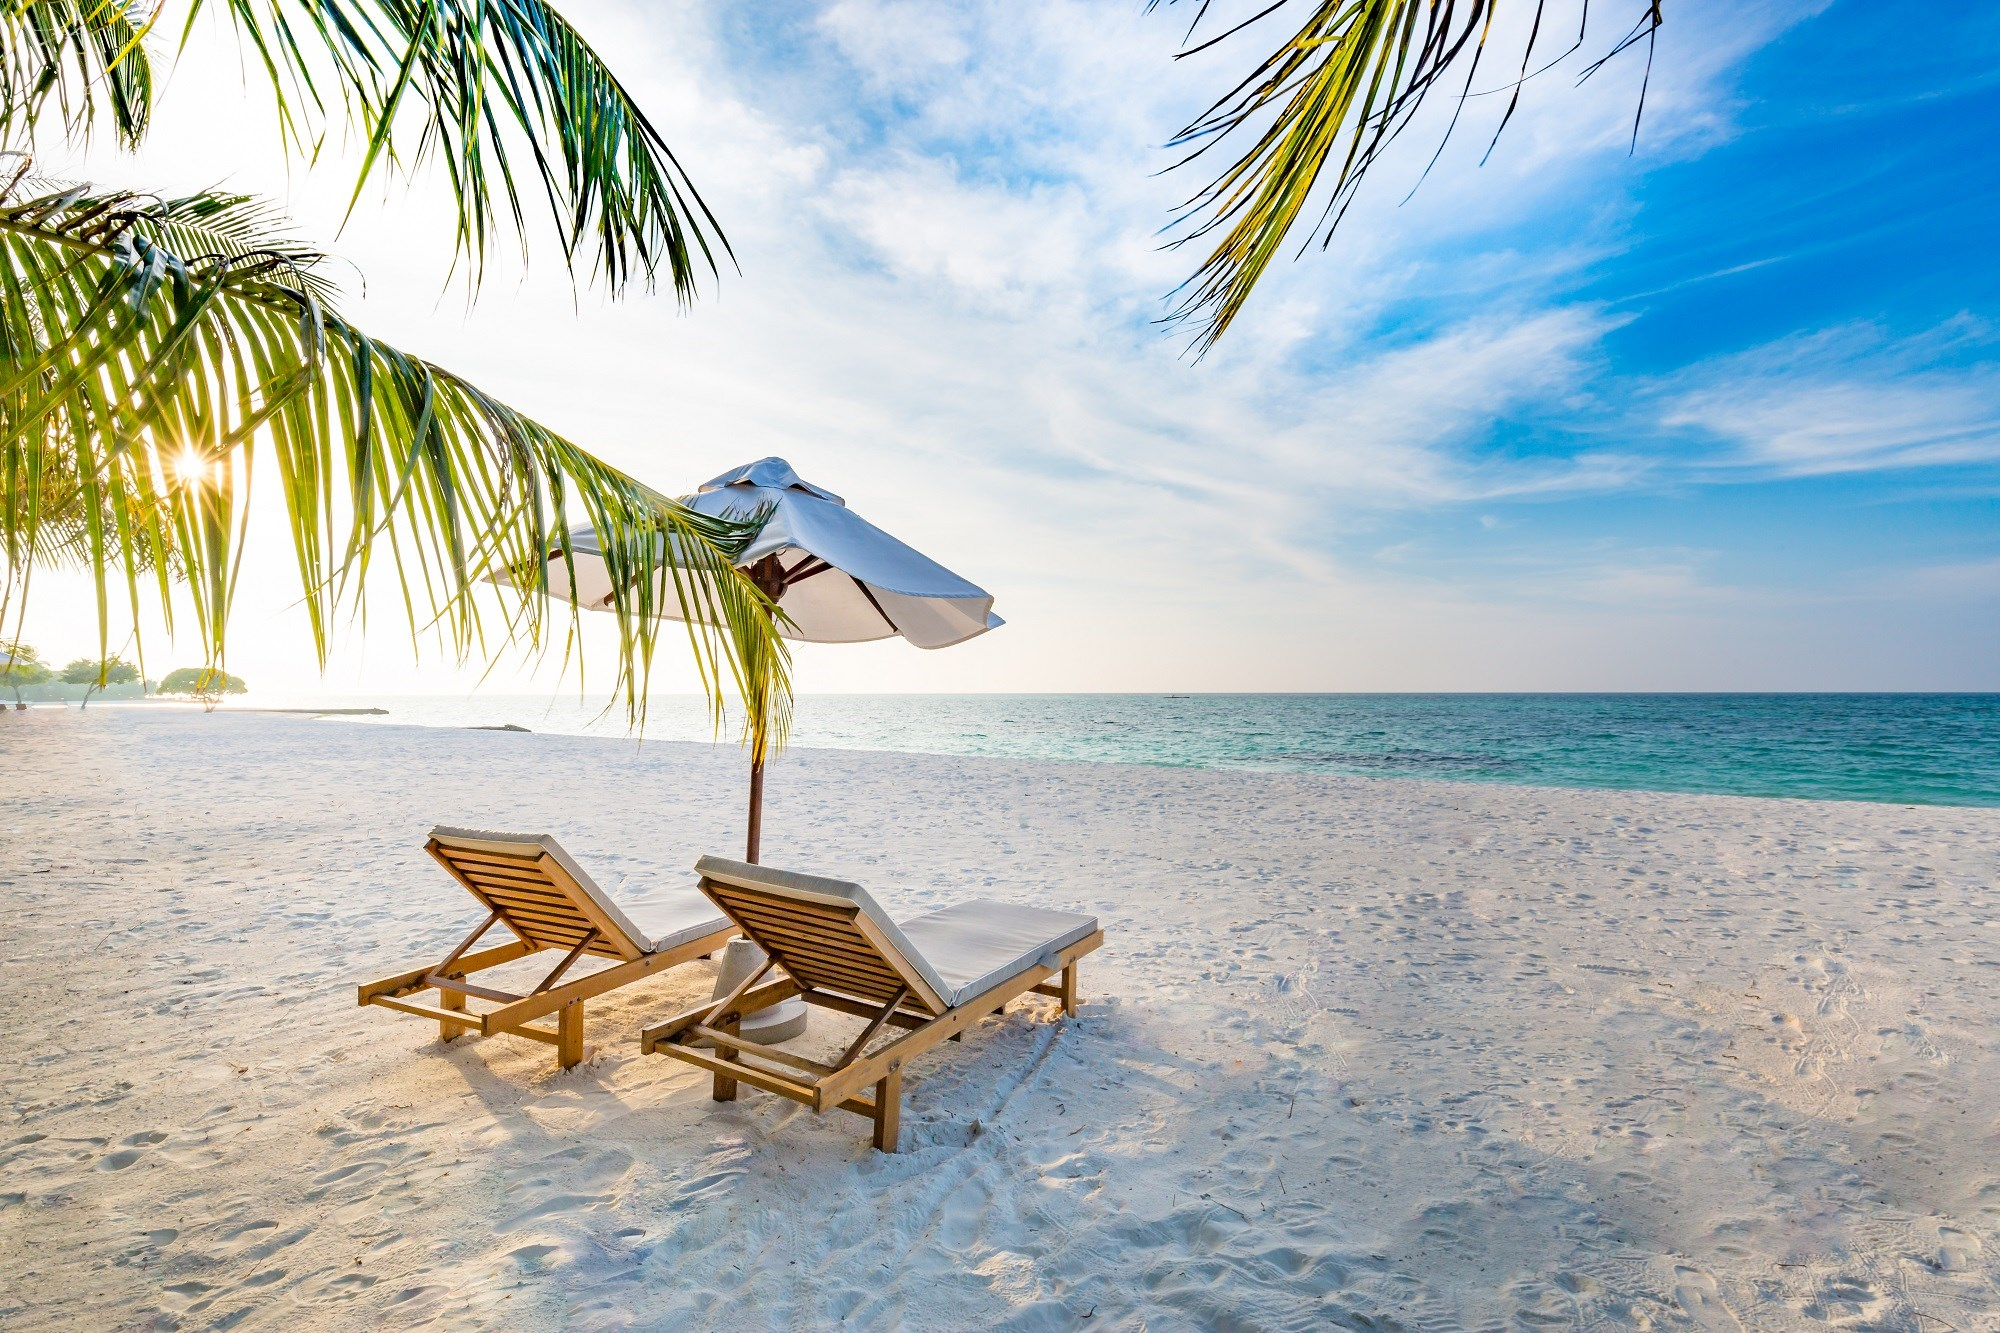 Although there are many demands on residents, taking advantage of paid vacation time is one of the perks and should be maximized.